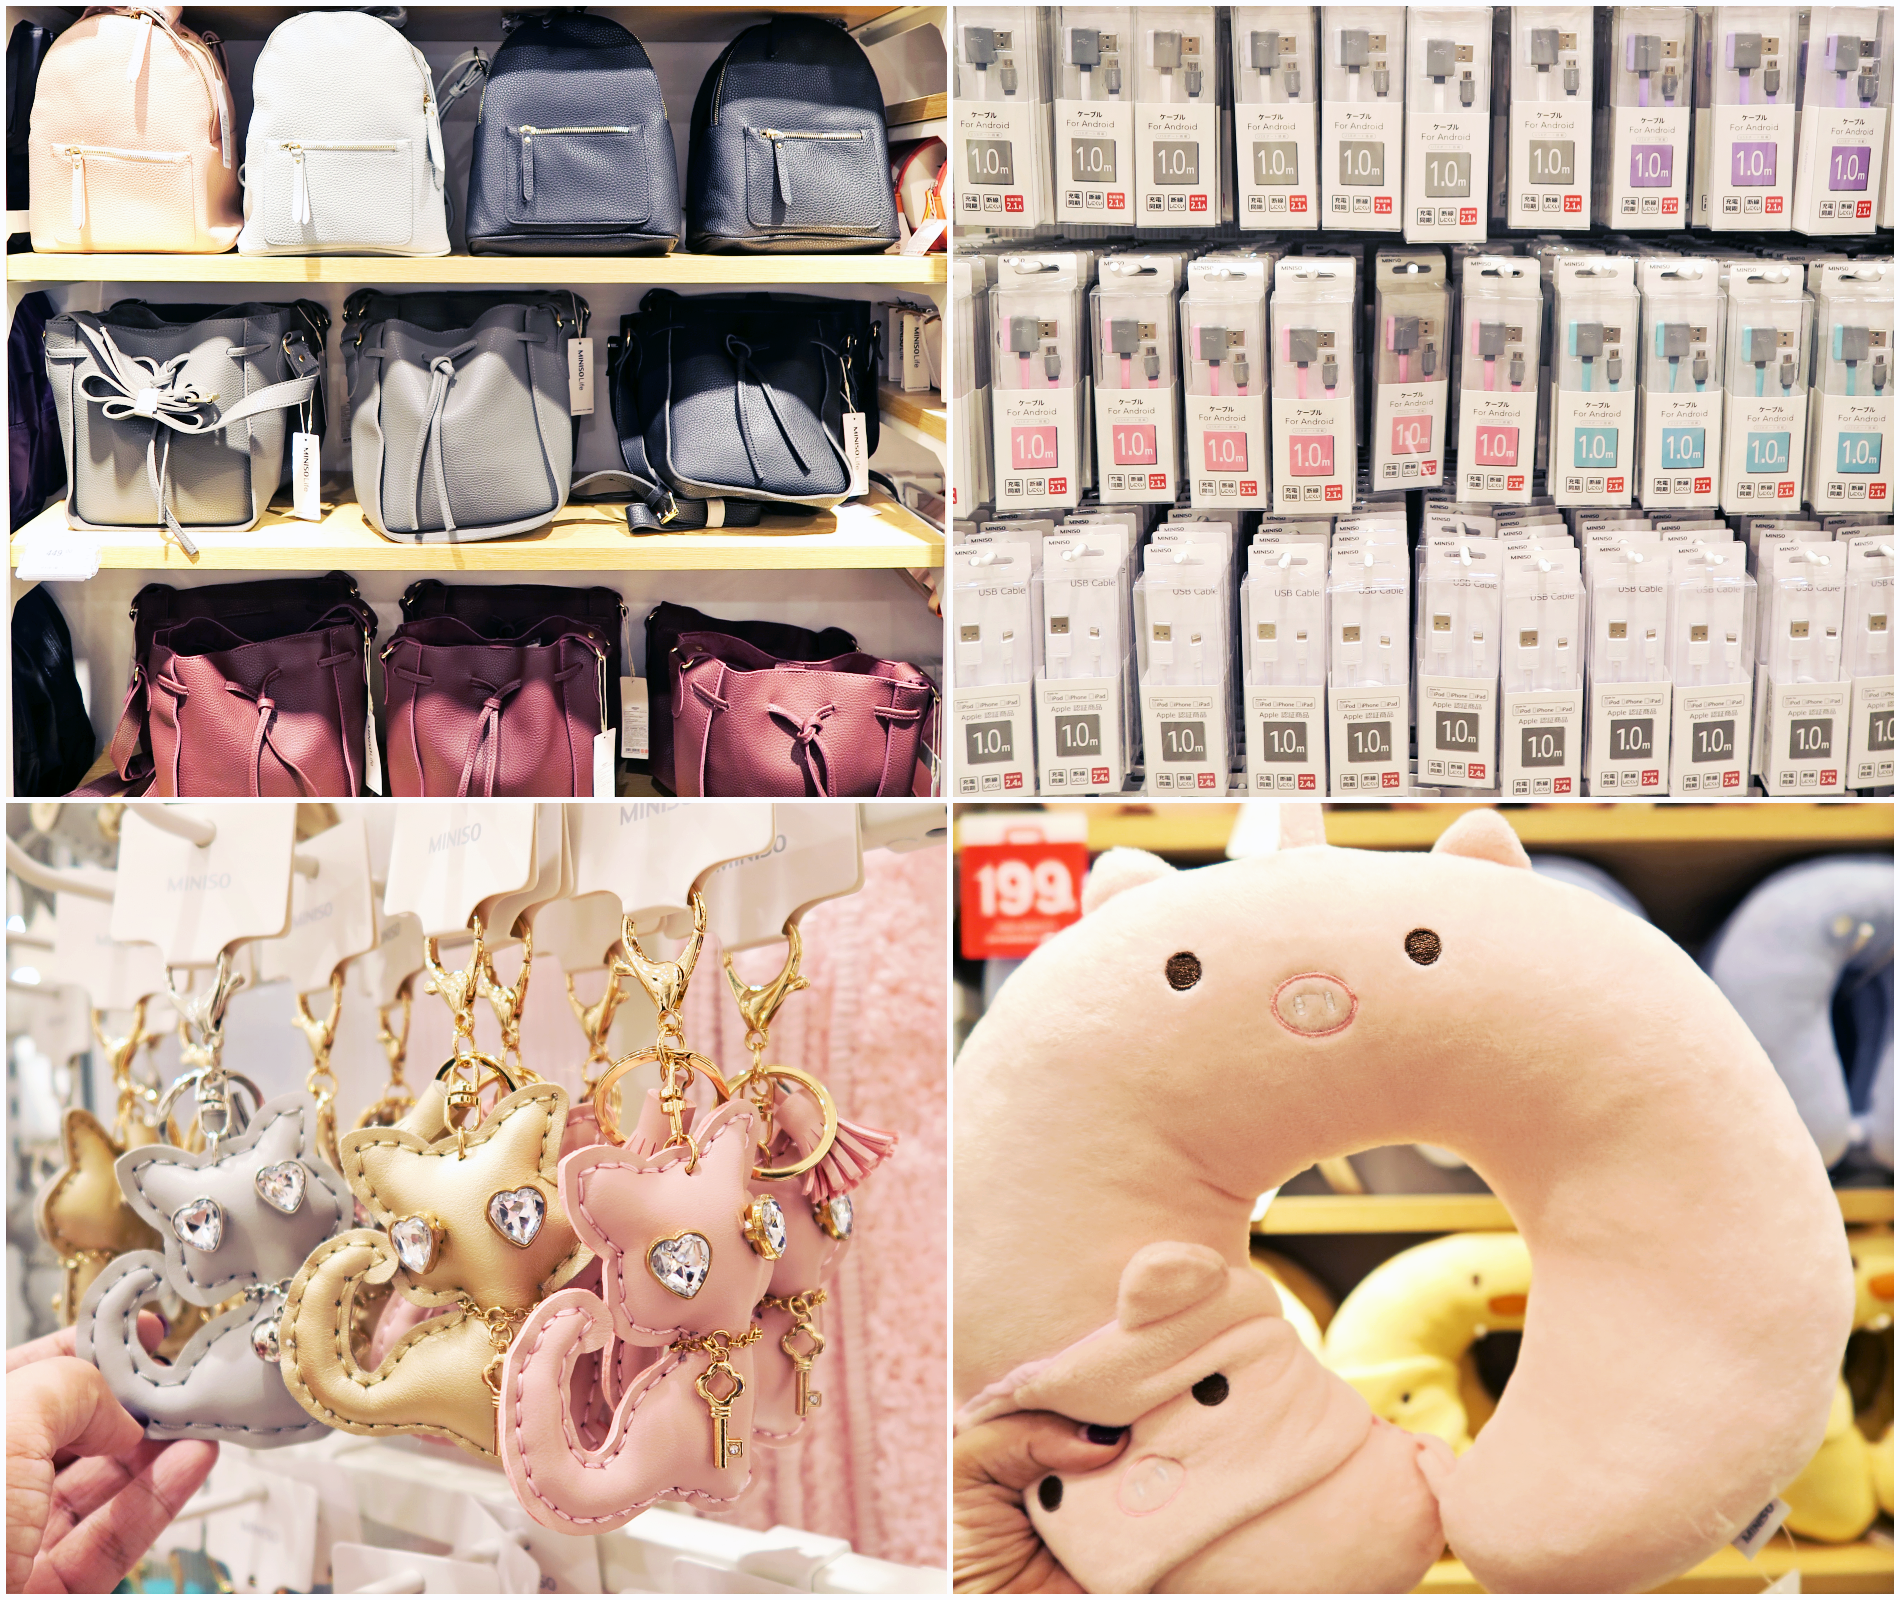 Miniso Haul  Why You Should Do Your Holiday Shopping At Miniso ... b6482ae8f00